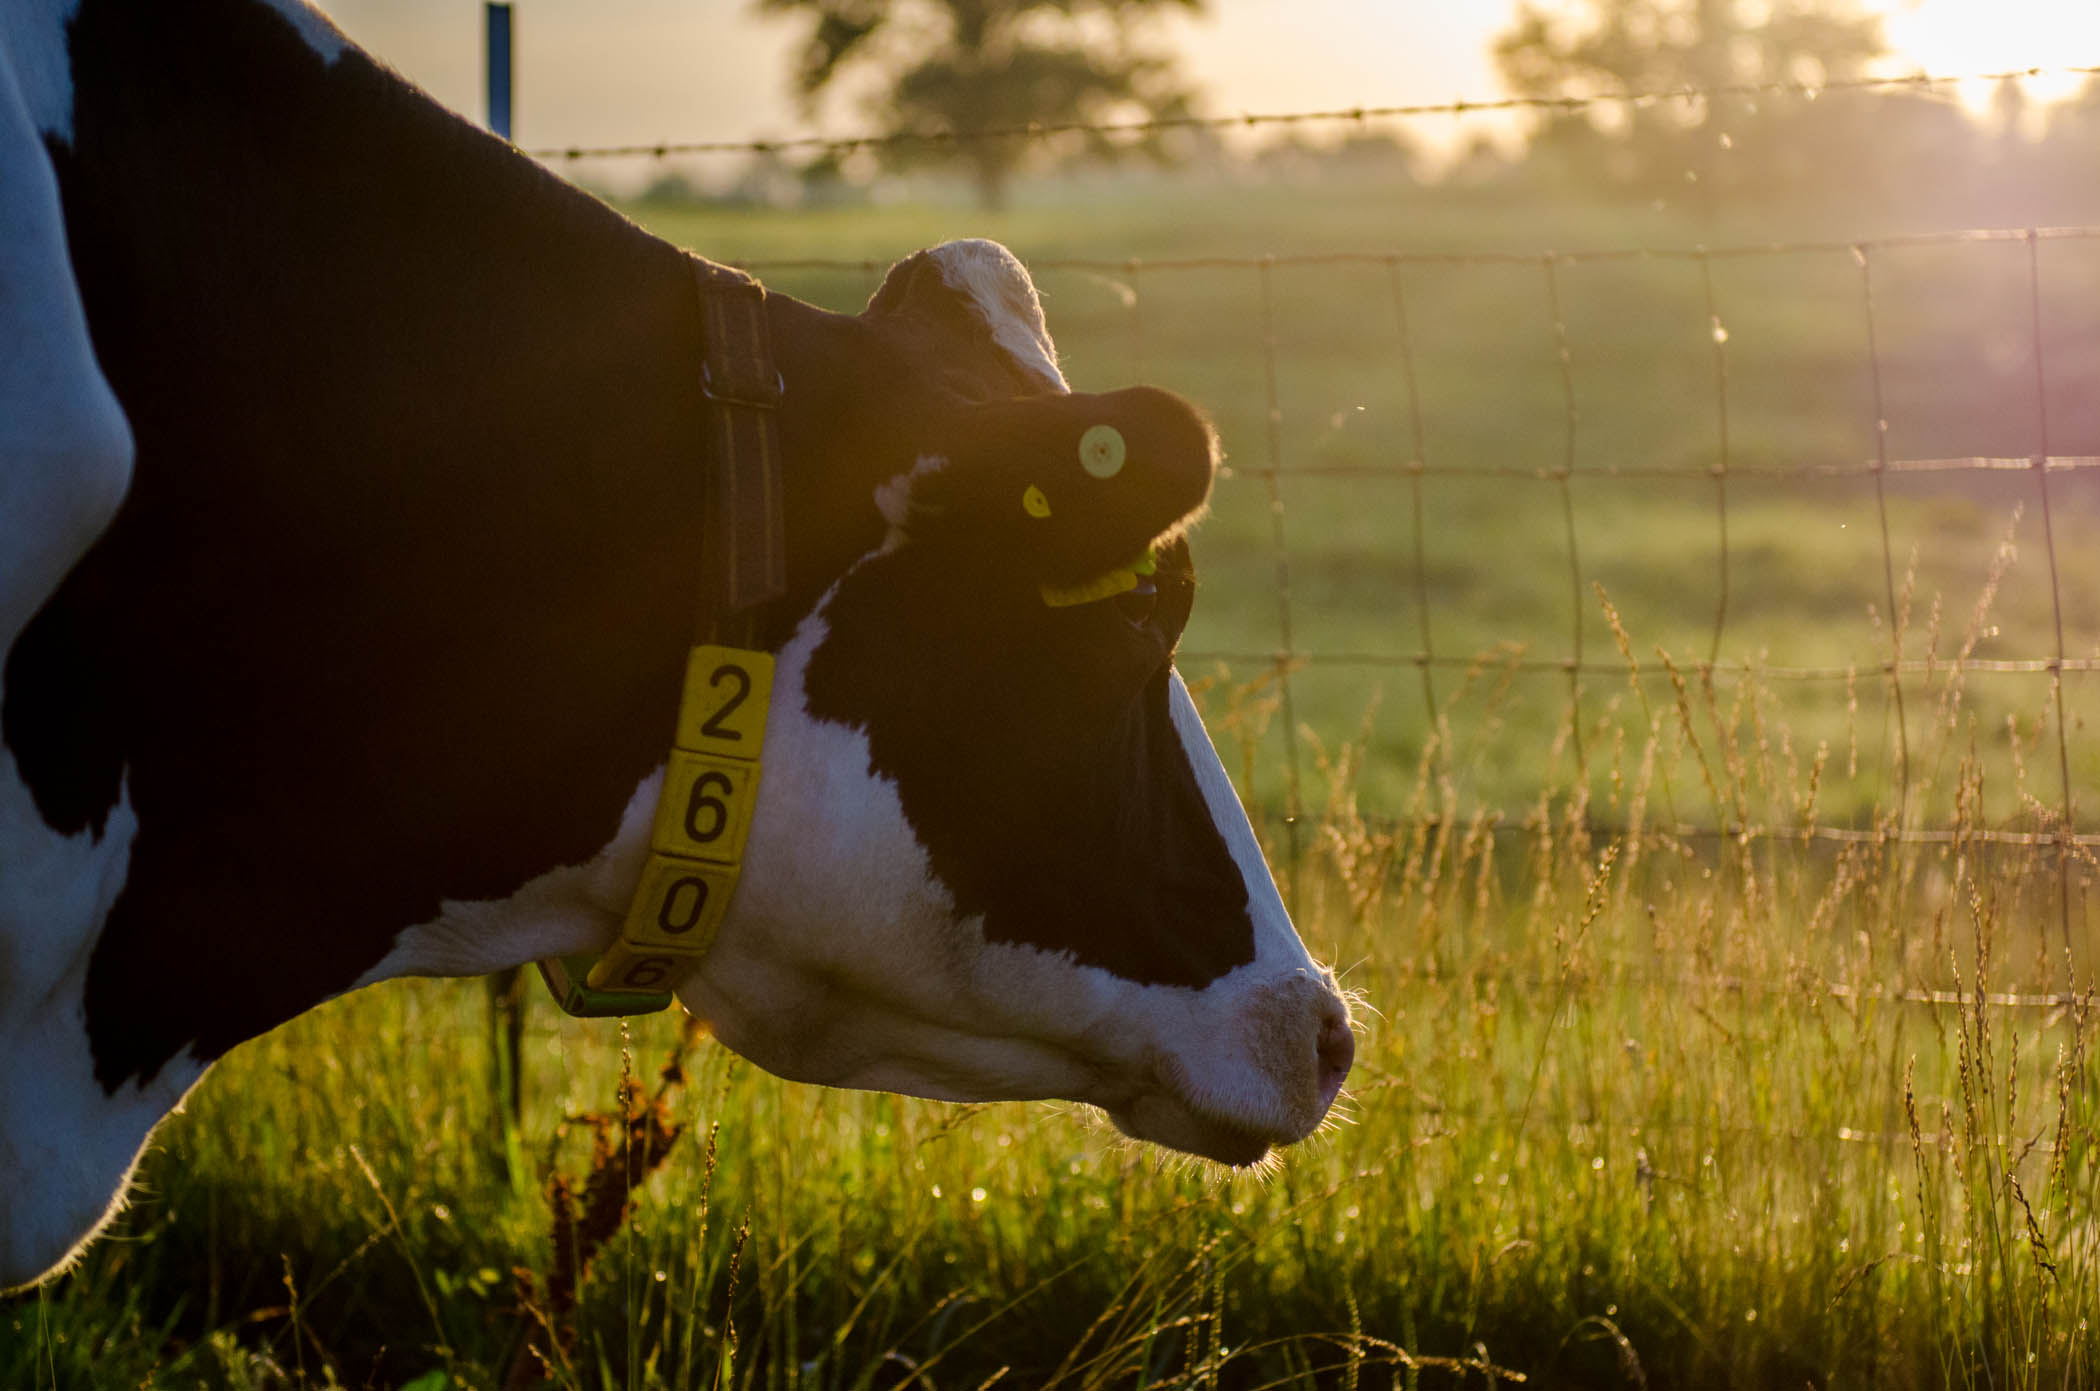 Image by the University of Missouri College of Agriculture Food and Natural Resources.  Image of a dairy cow at Foremost Dairy Center in Missouri.  No images in this post will be of marijuana production.